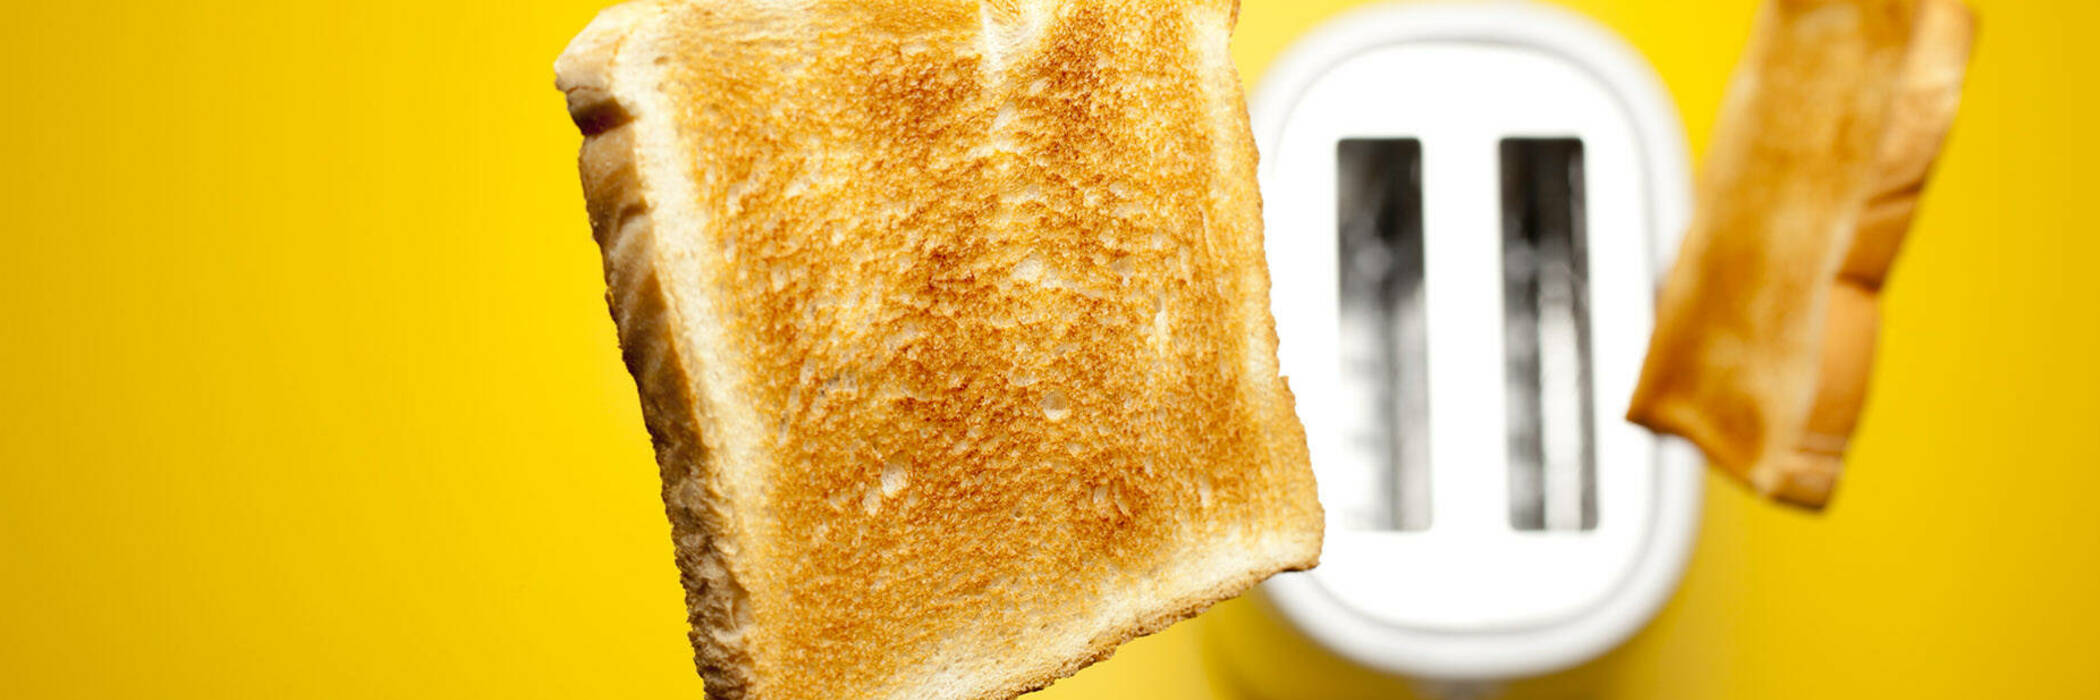 Toast popping out of white toaster.